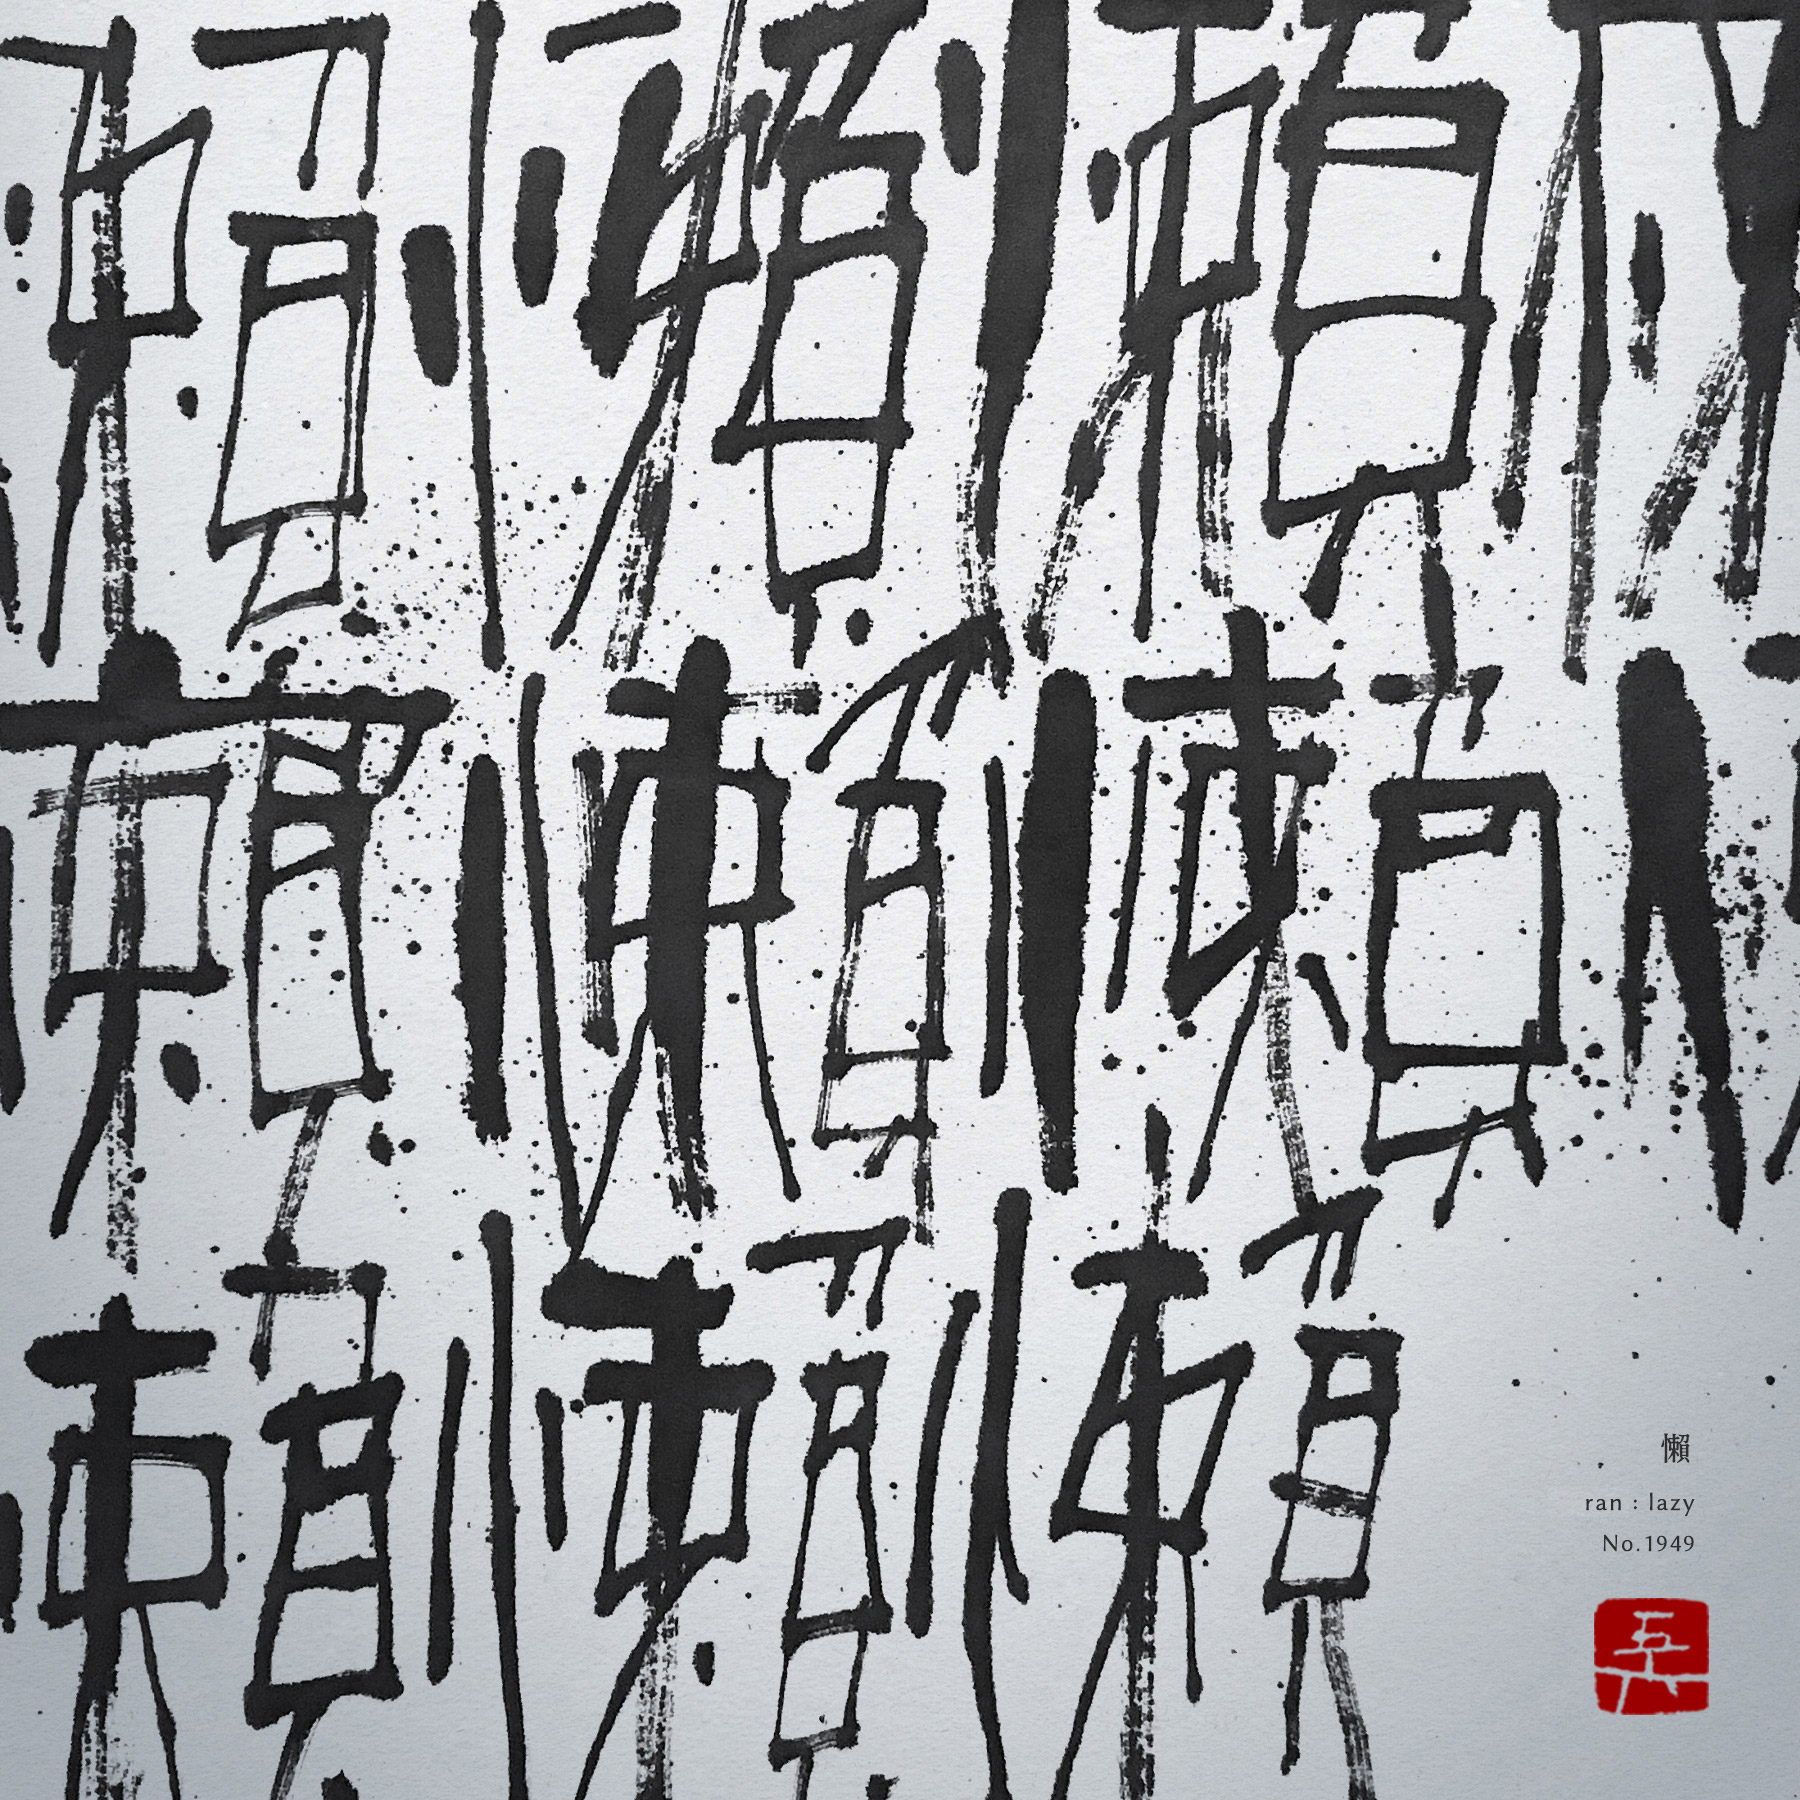 懶 | lazy 書道作品 japaneseart japanese calligraphy 書家 田川悟郎 Goroh Tagawa